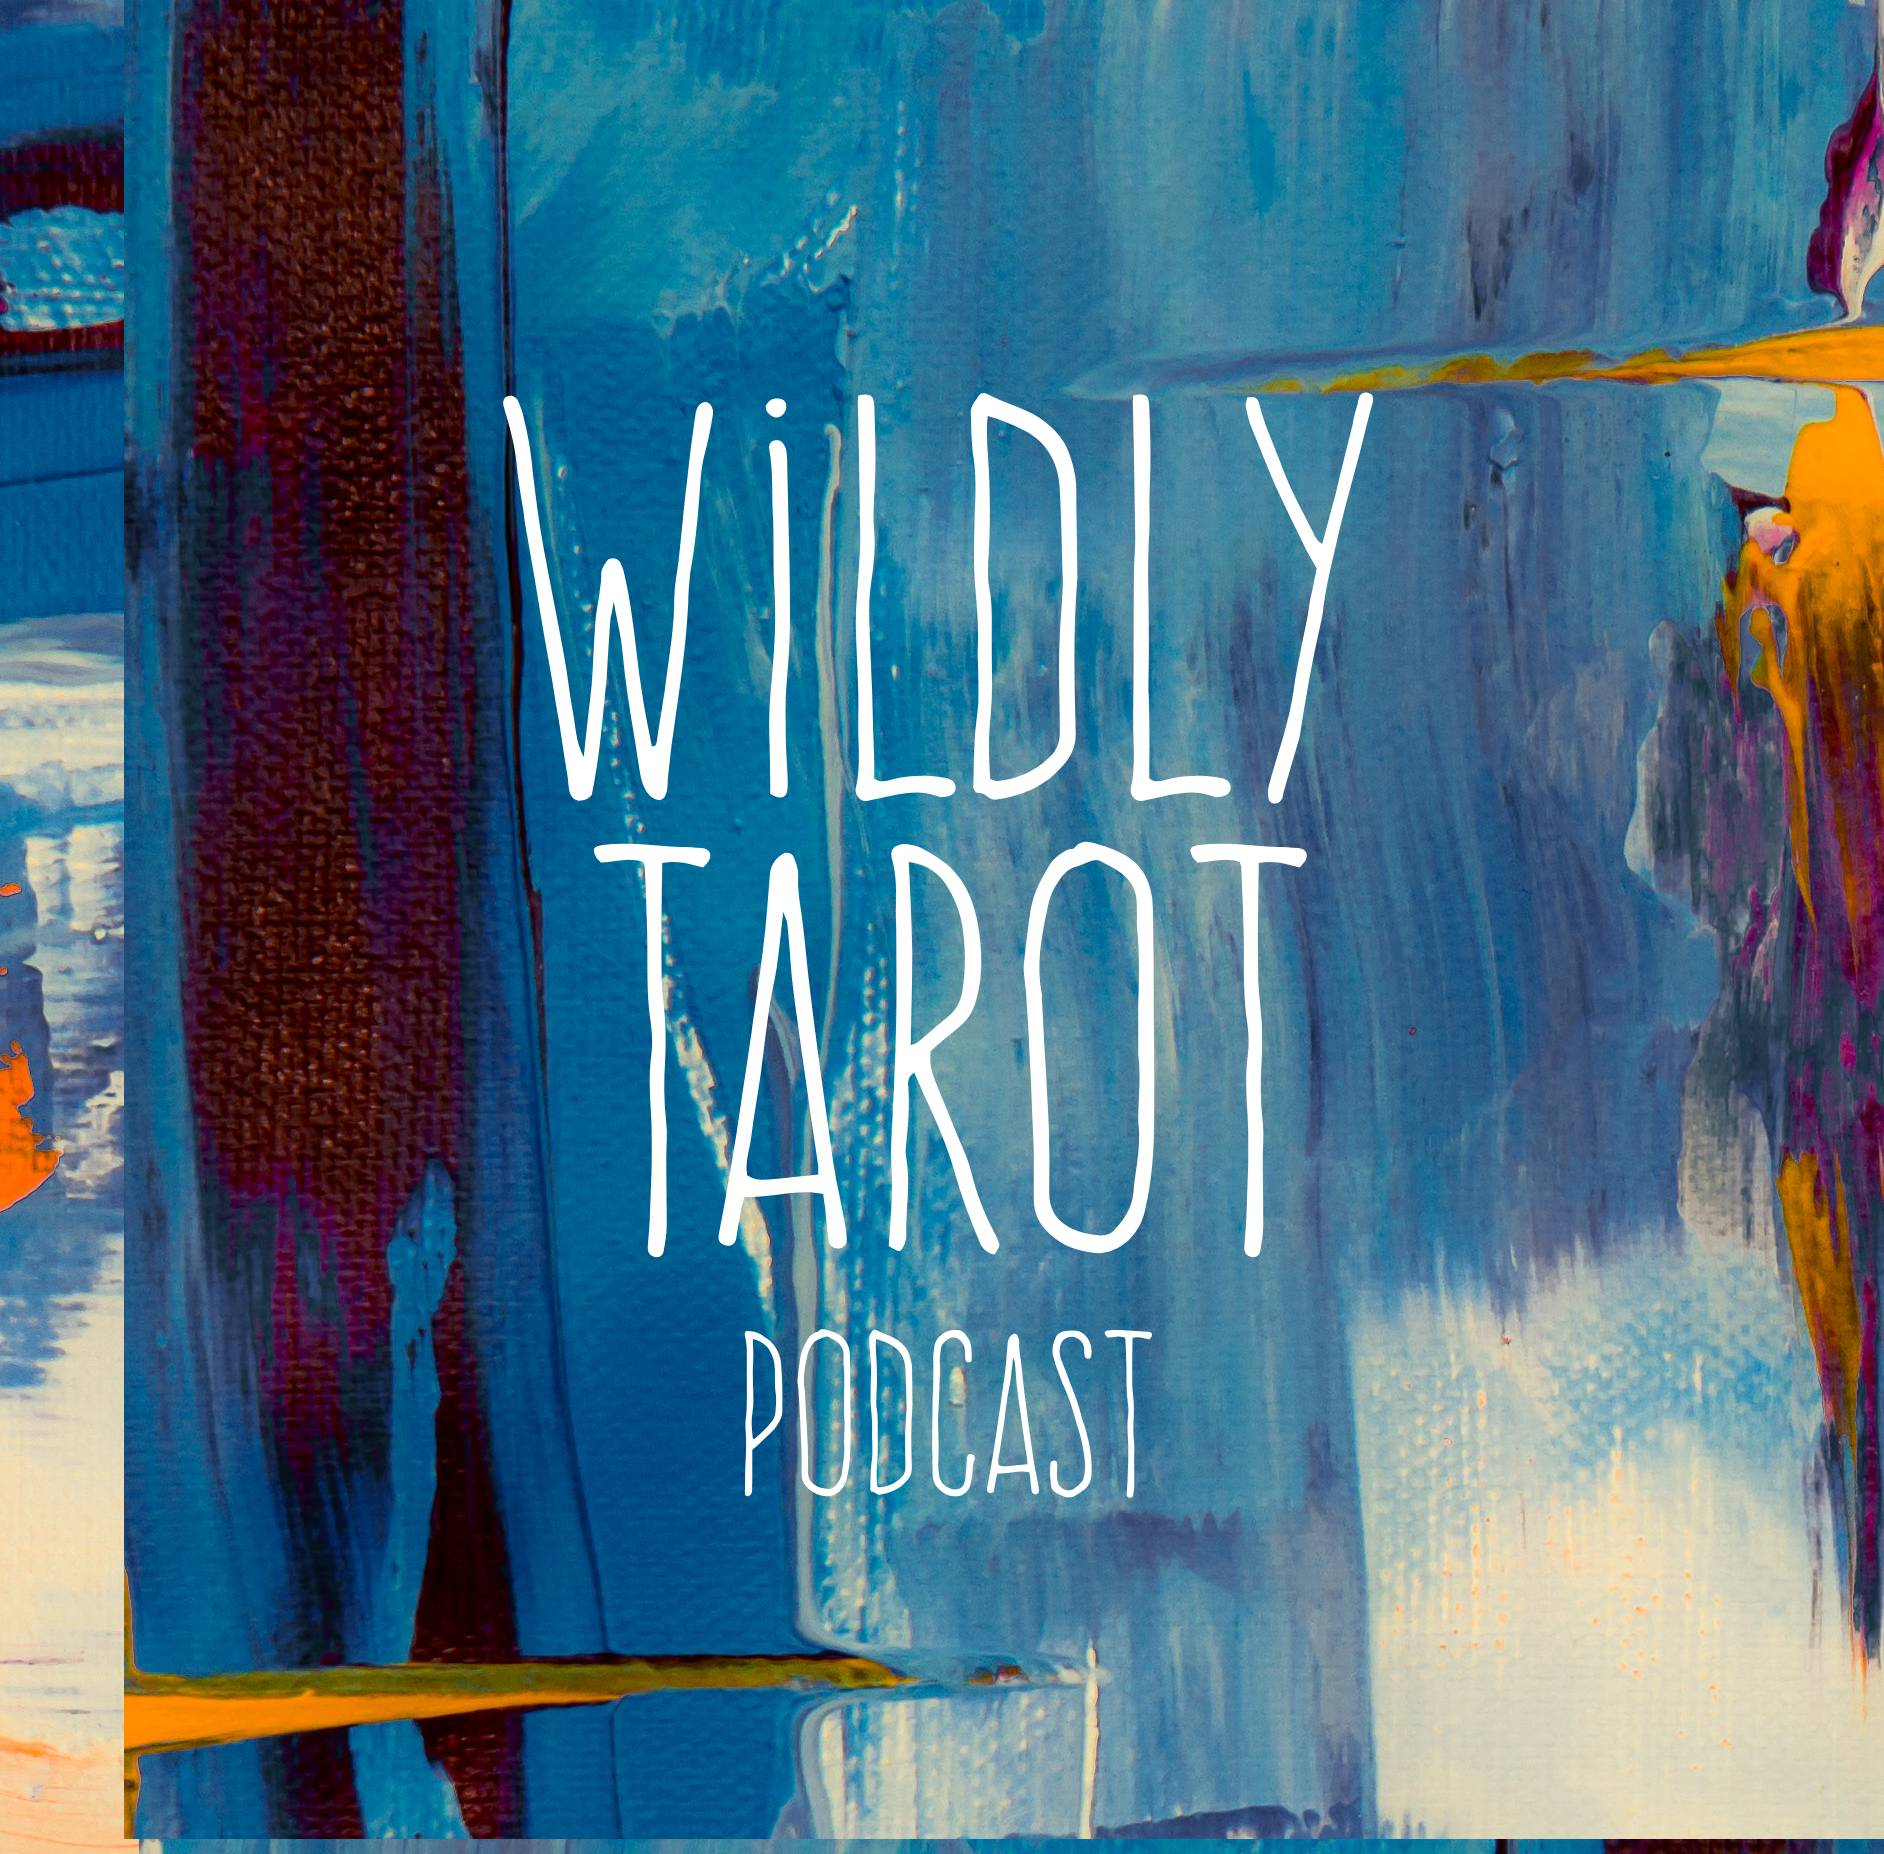 Wildly Tarot Podcast